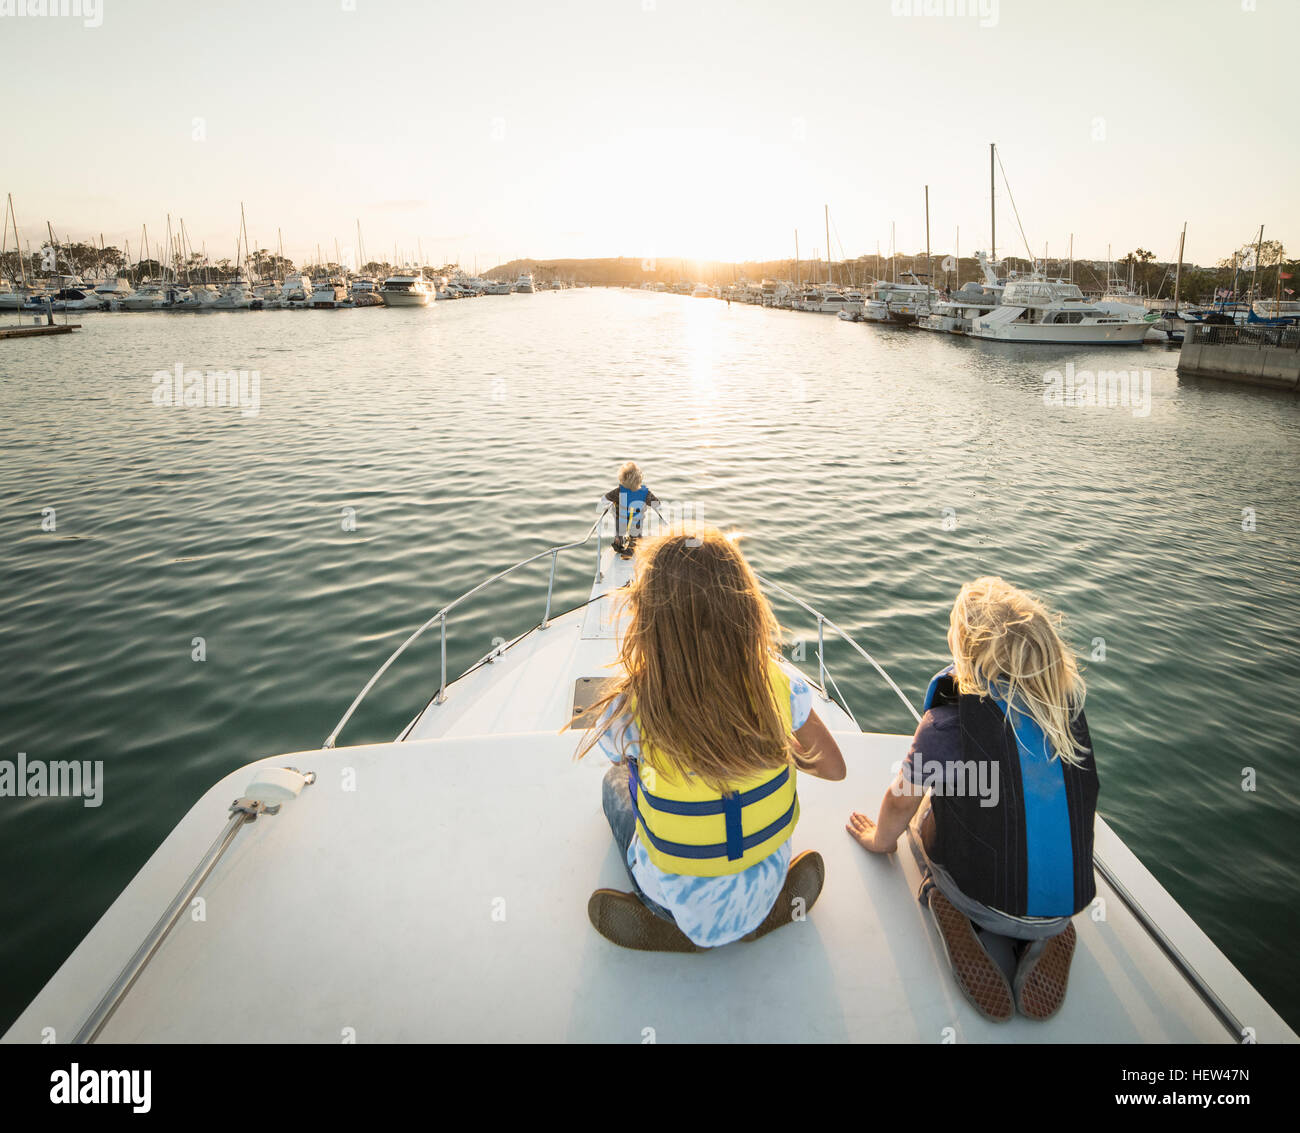 Rear view of children on bow of boat, Dana Point, California, USA - Stock Image